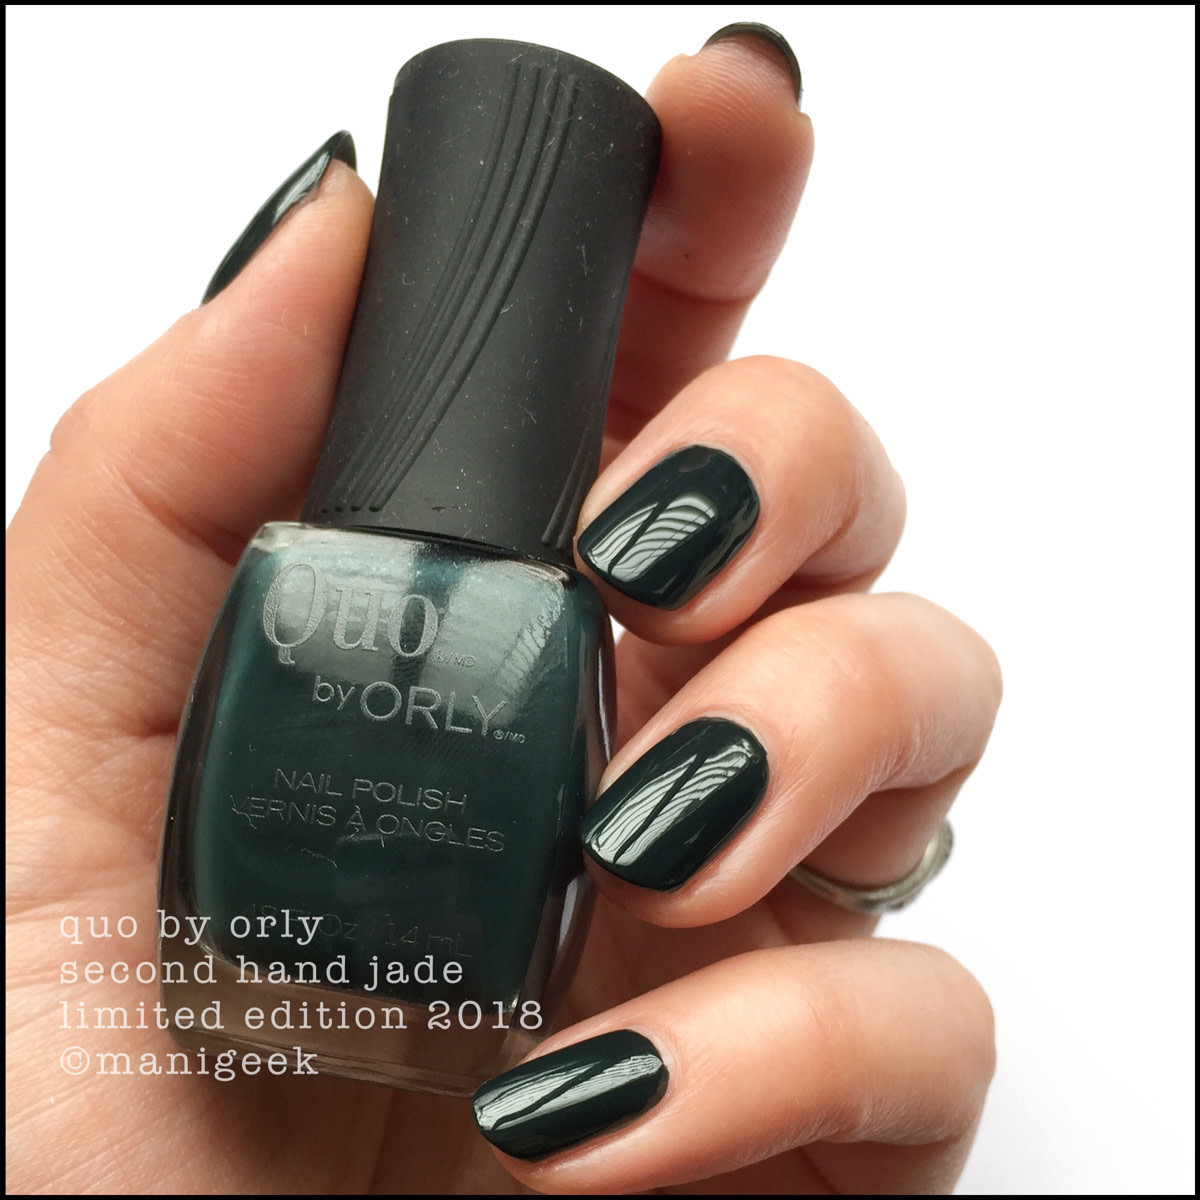 Quo by Orly Second Hand Jade - Orly Darlings of Defiance Collection Swatches